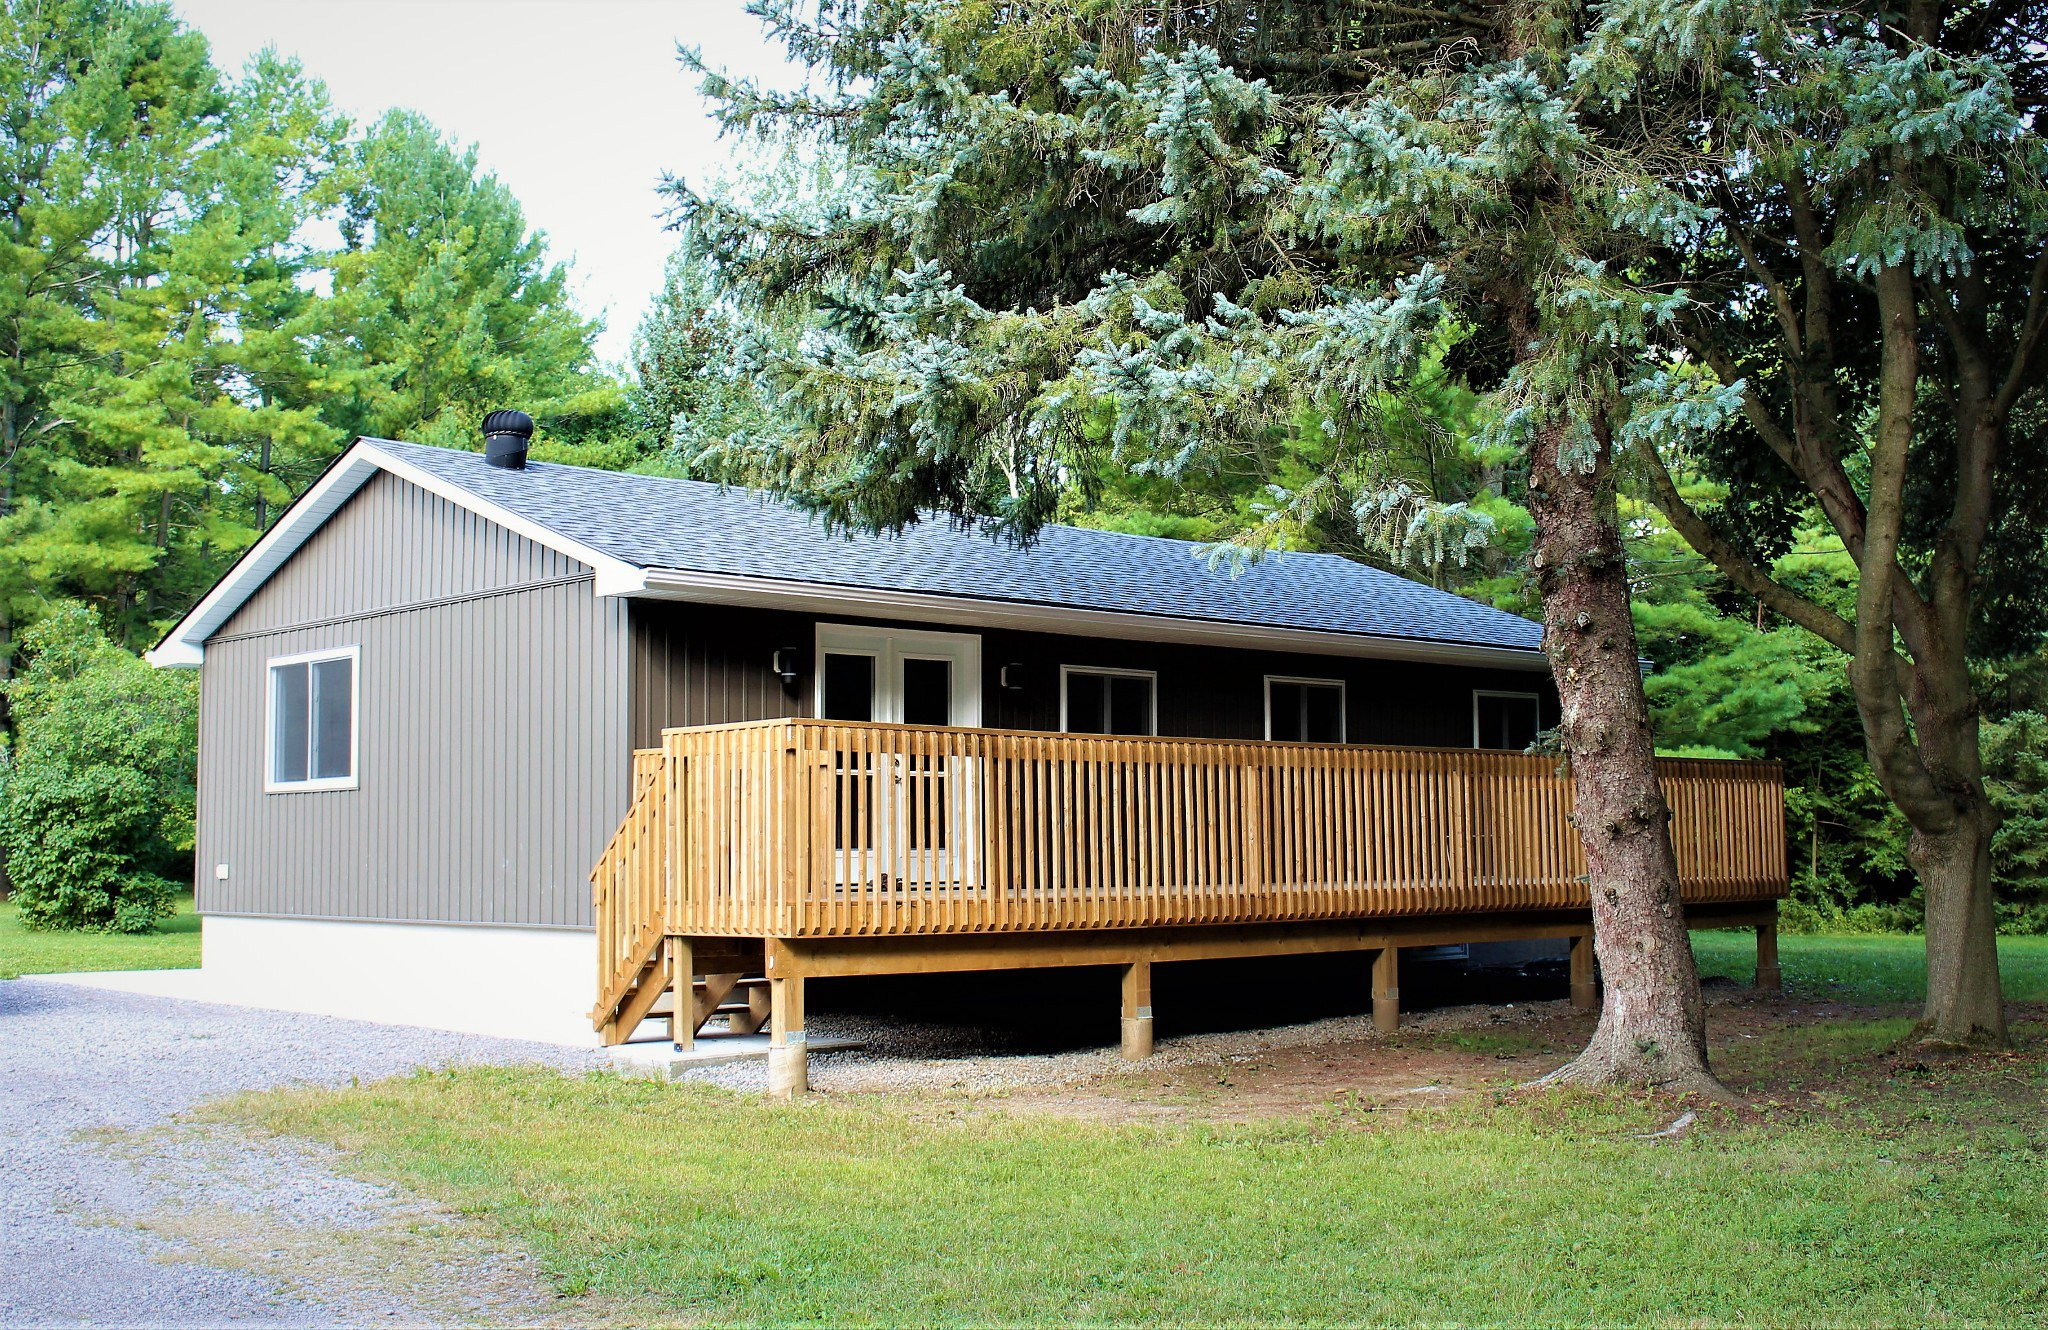 Main Photo: 5292 Harris Boatworks Road in Gores Landing: House for sale : MLS®# 40015669